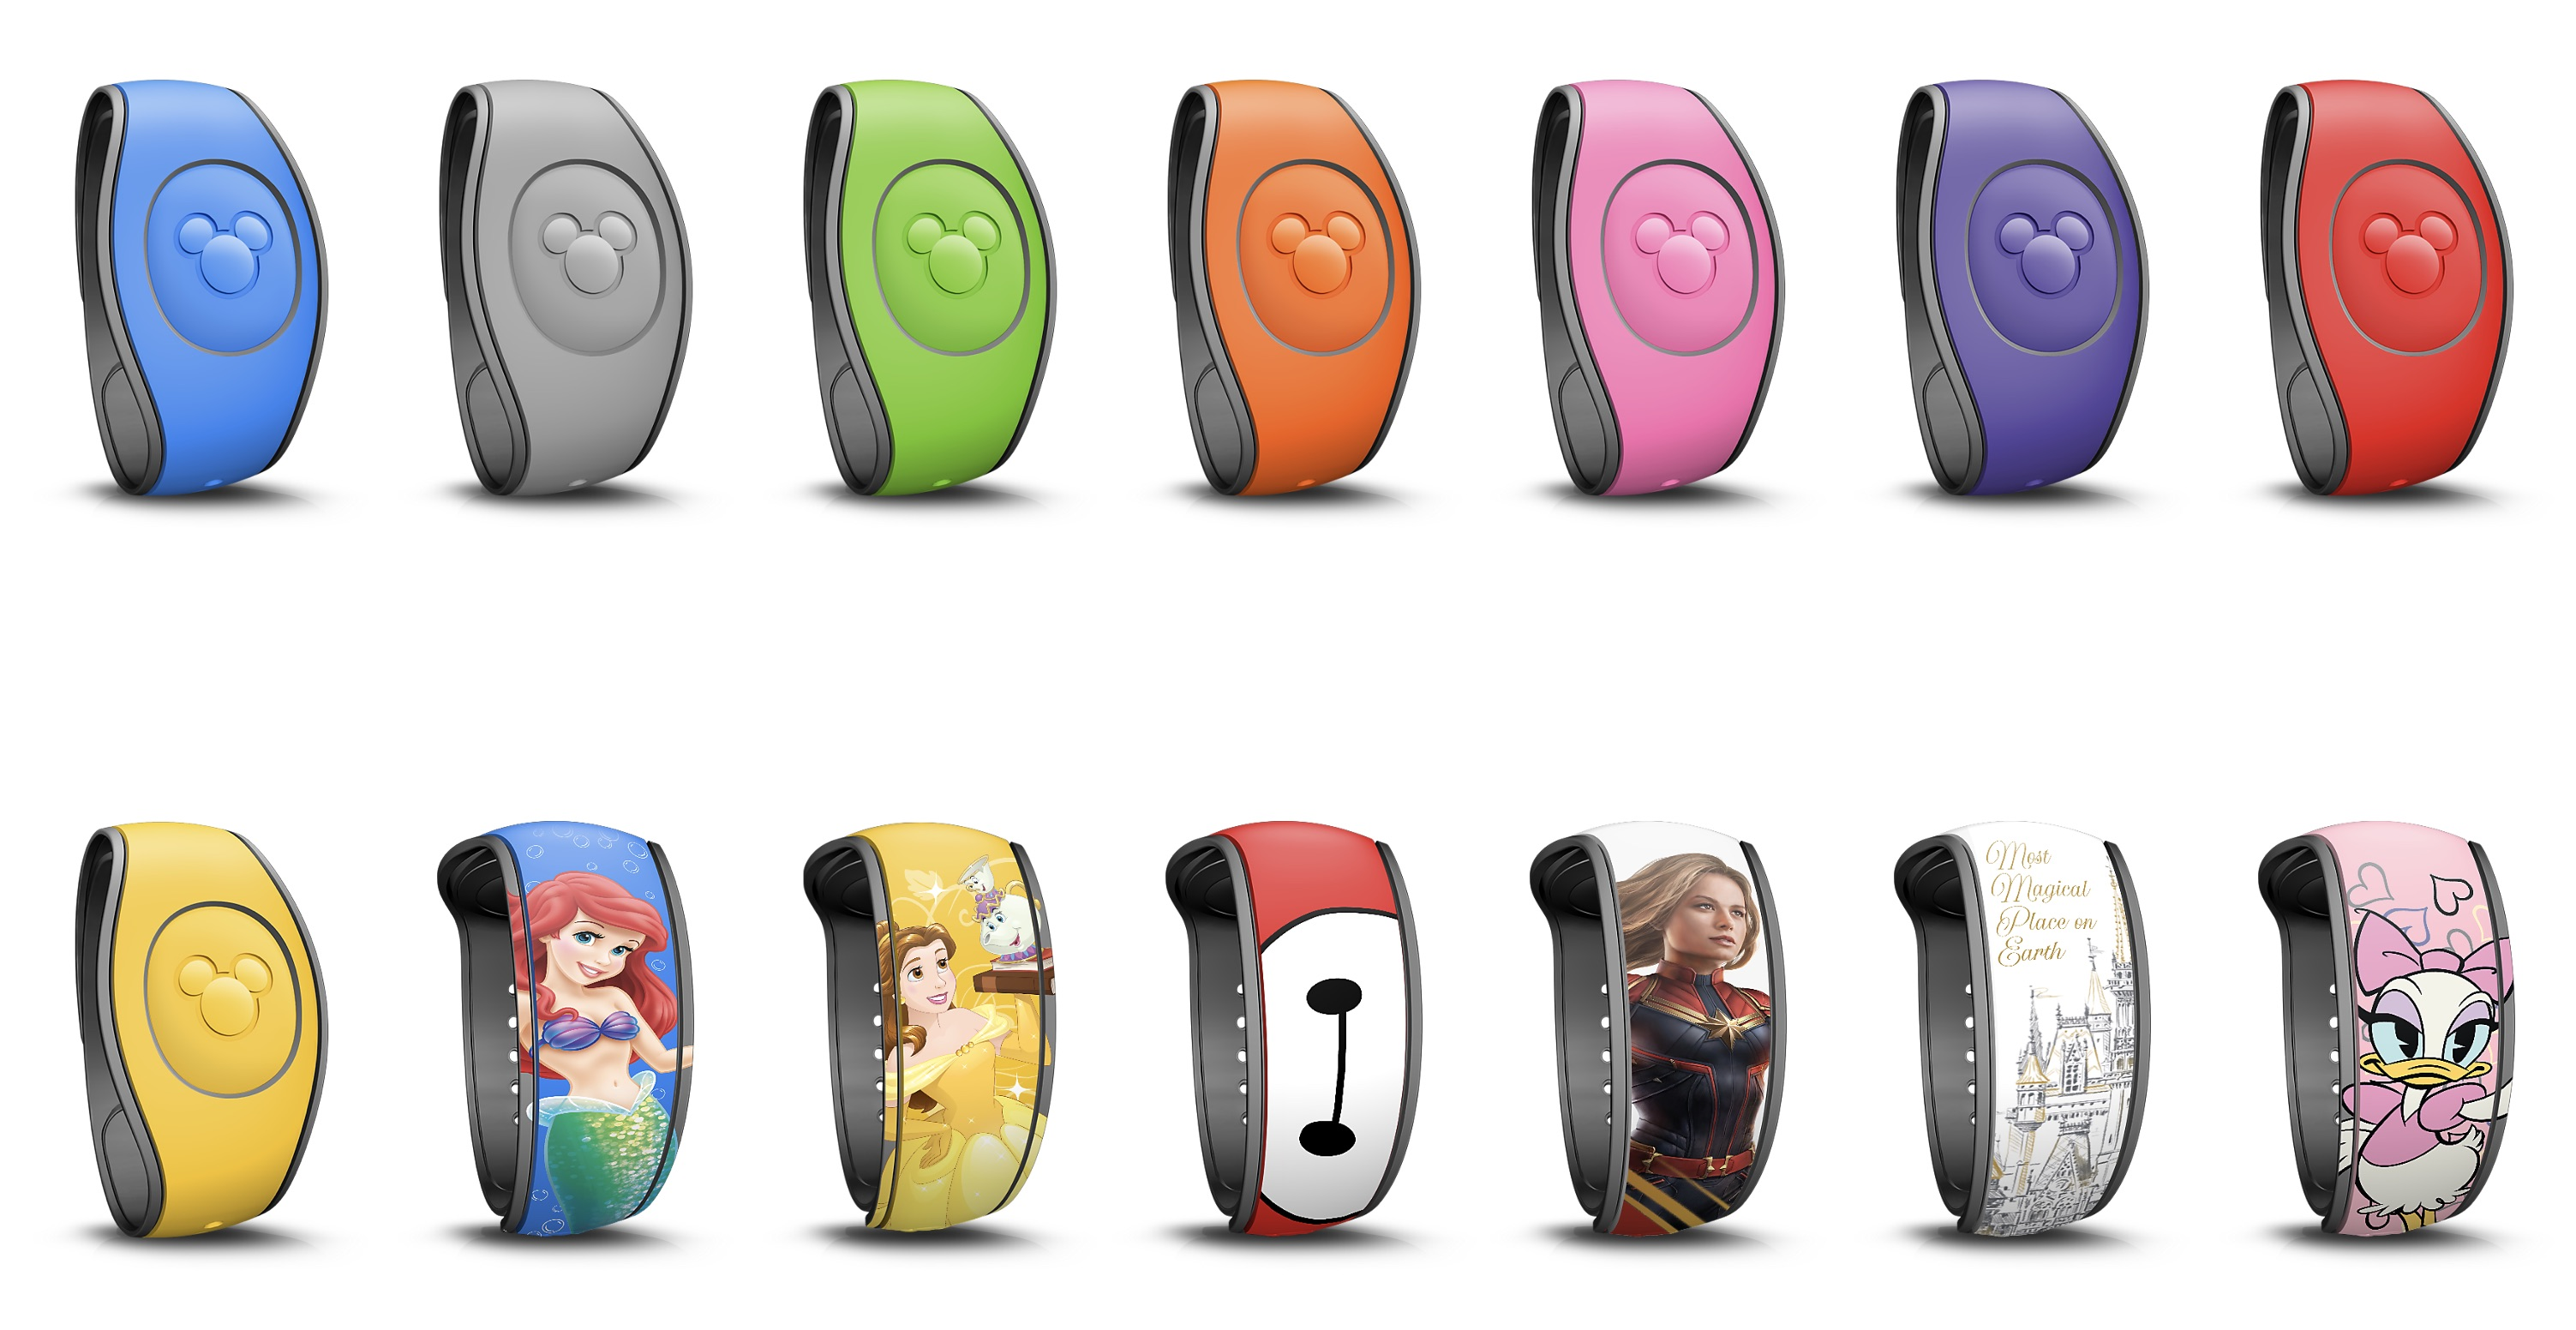 MagicBands quickly became ubquitos at Walt Disney World